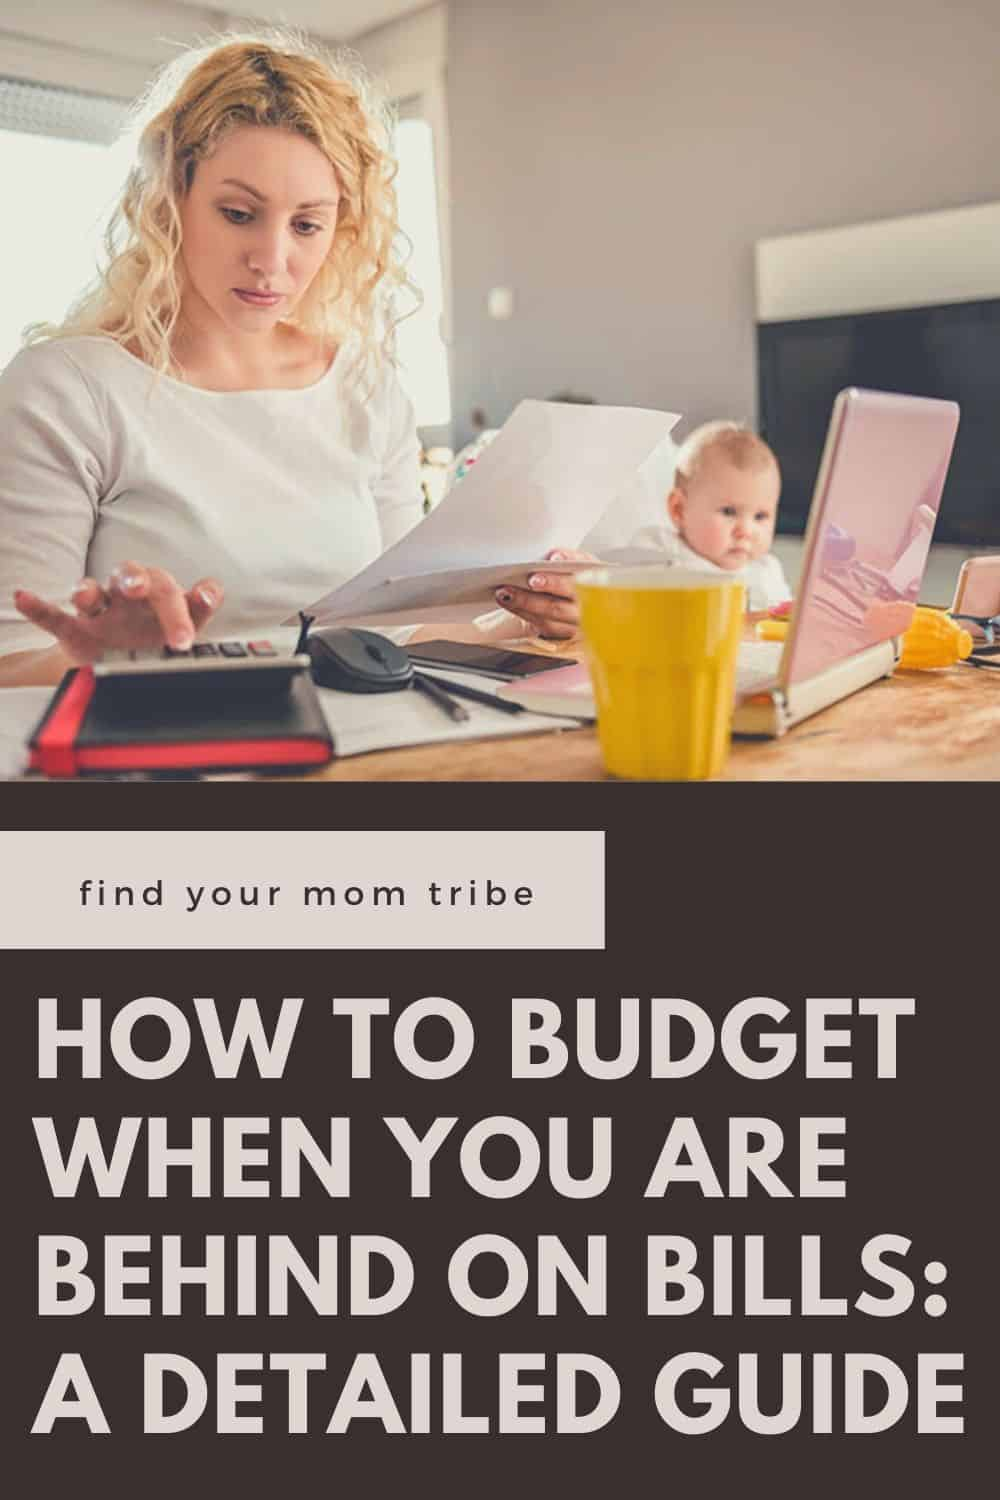 How to Budget When You Are Behind on Bills: A Detailed Guide